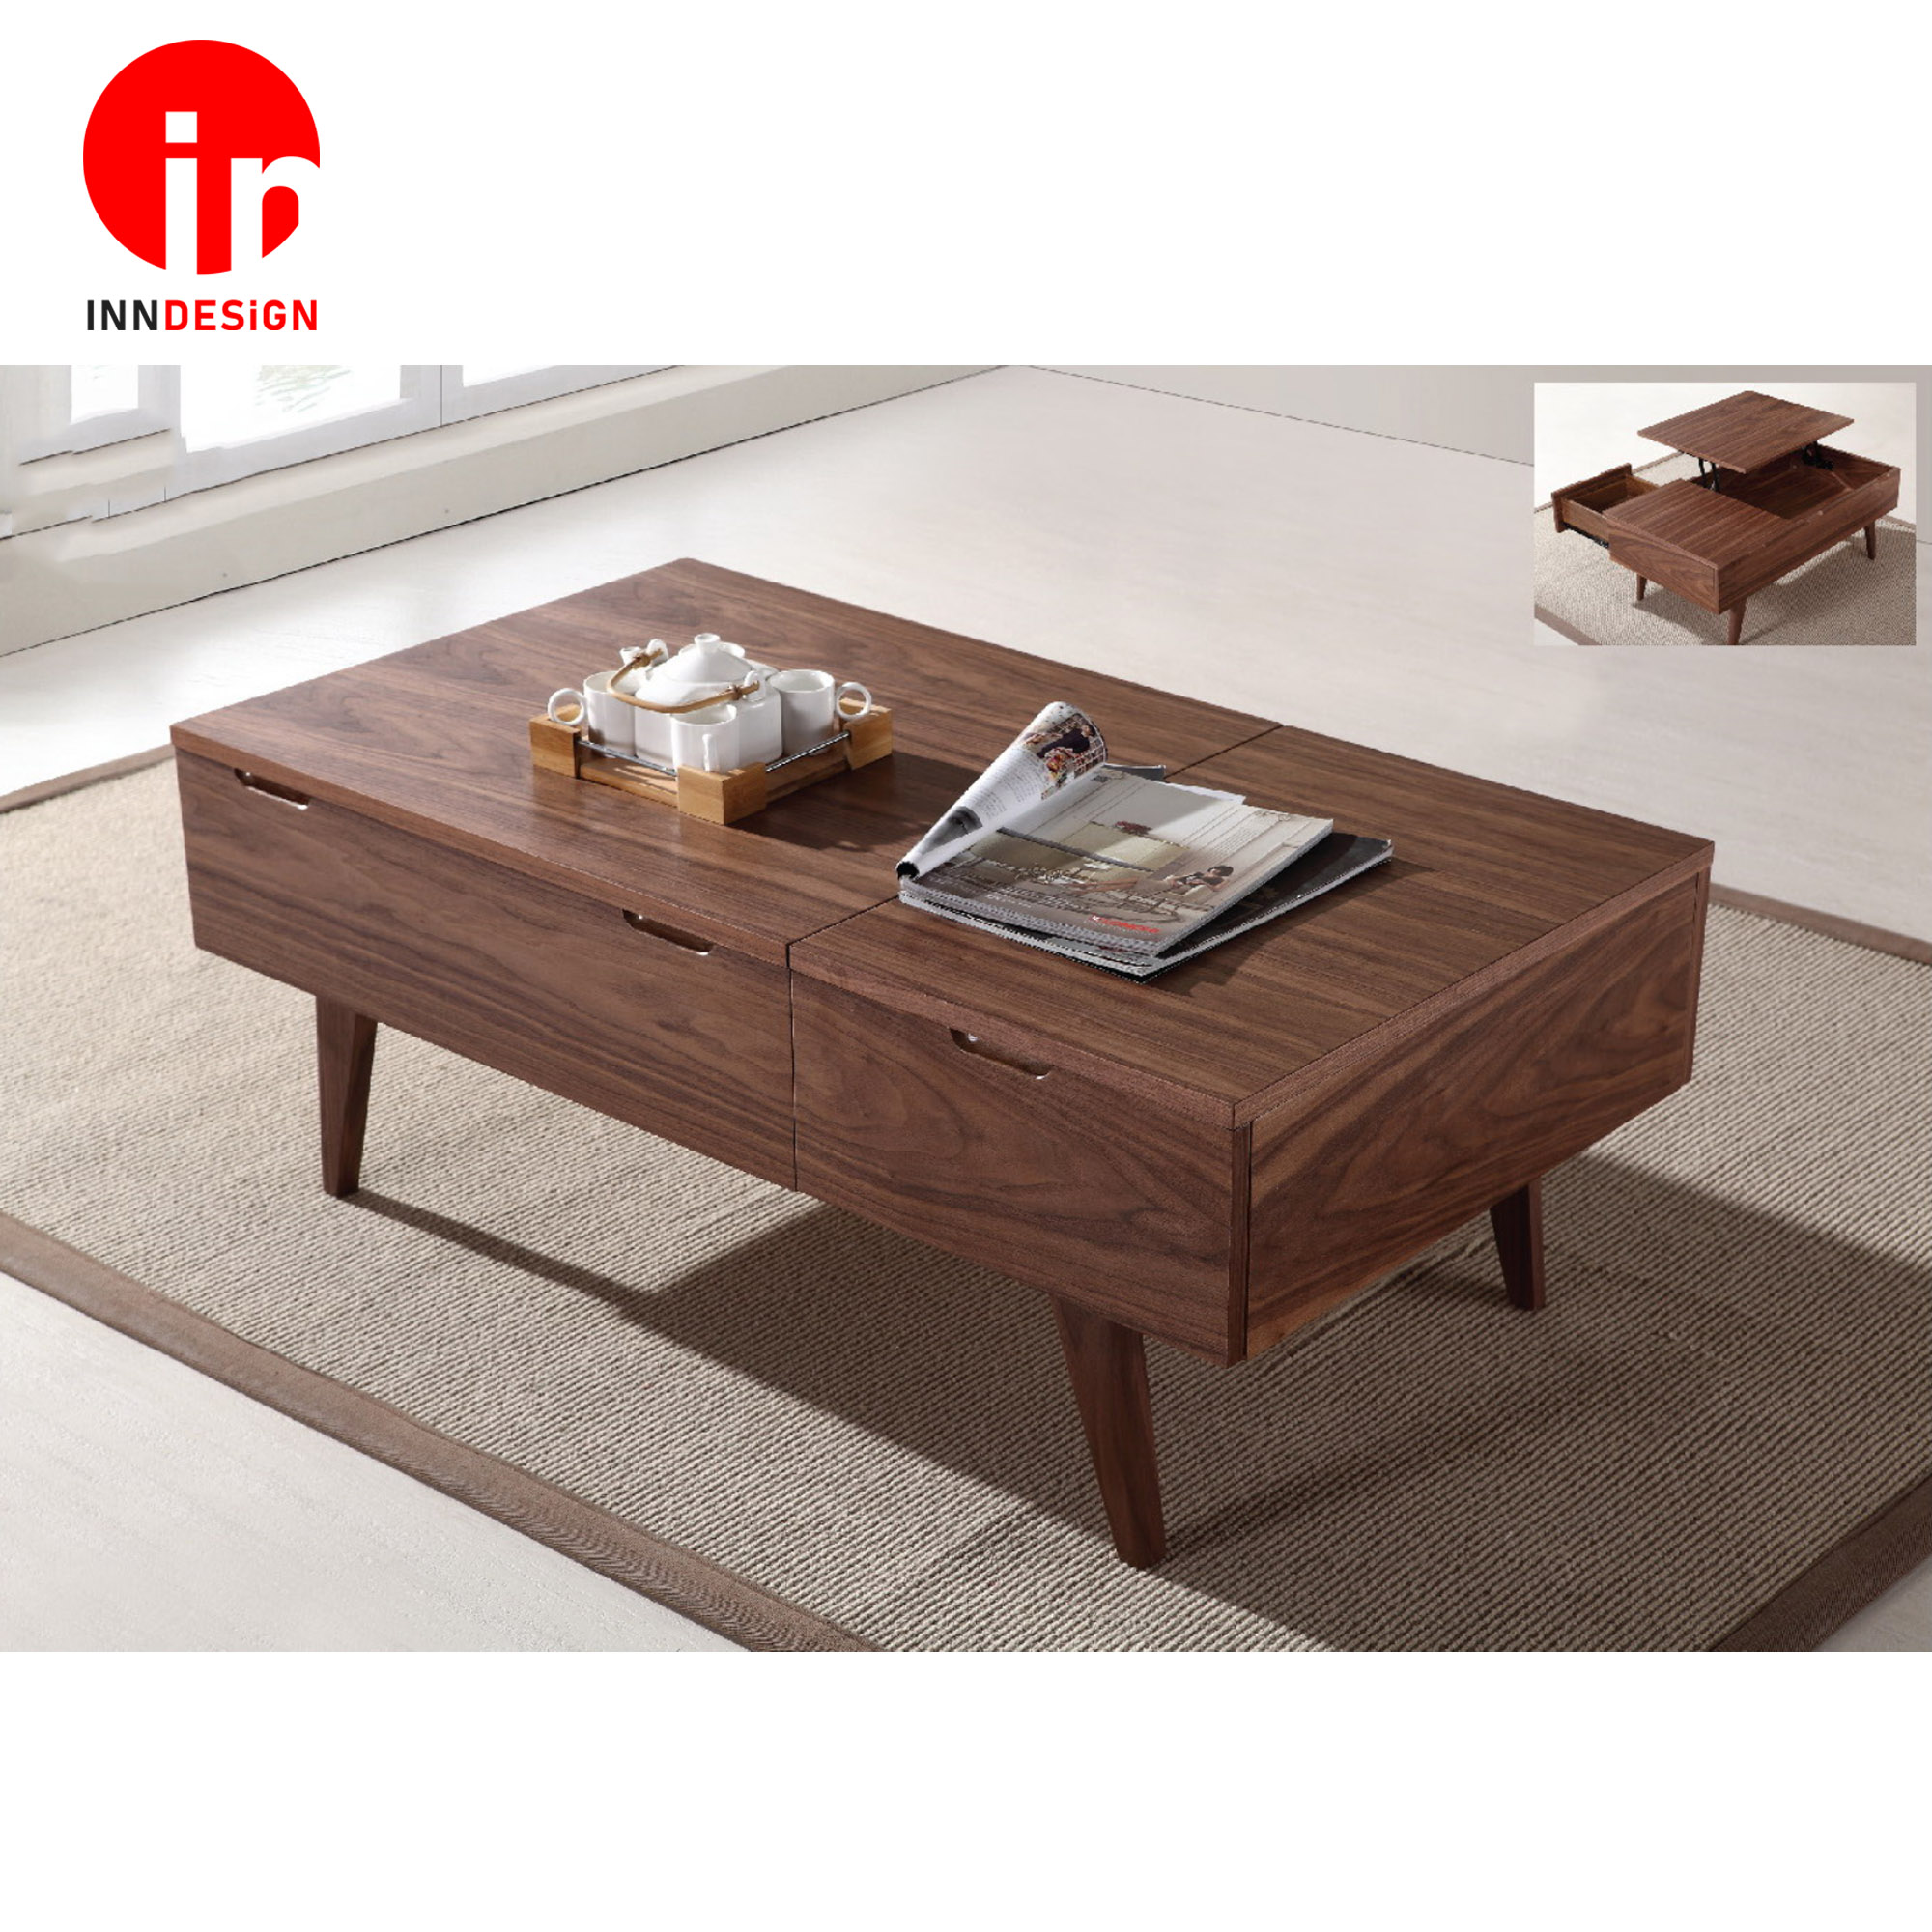 Lovene Lift-Up Solid Wood Coffee Table (Free Delivery and Installation)